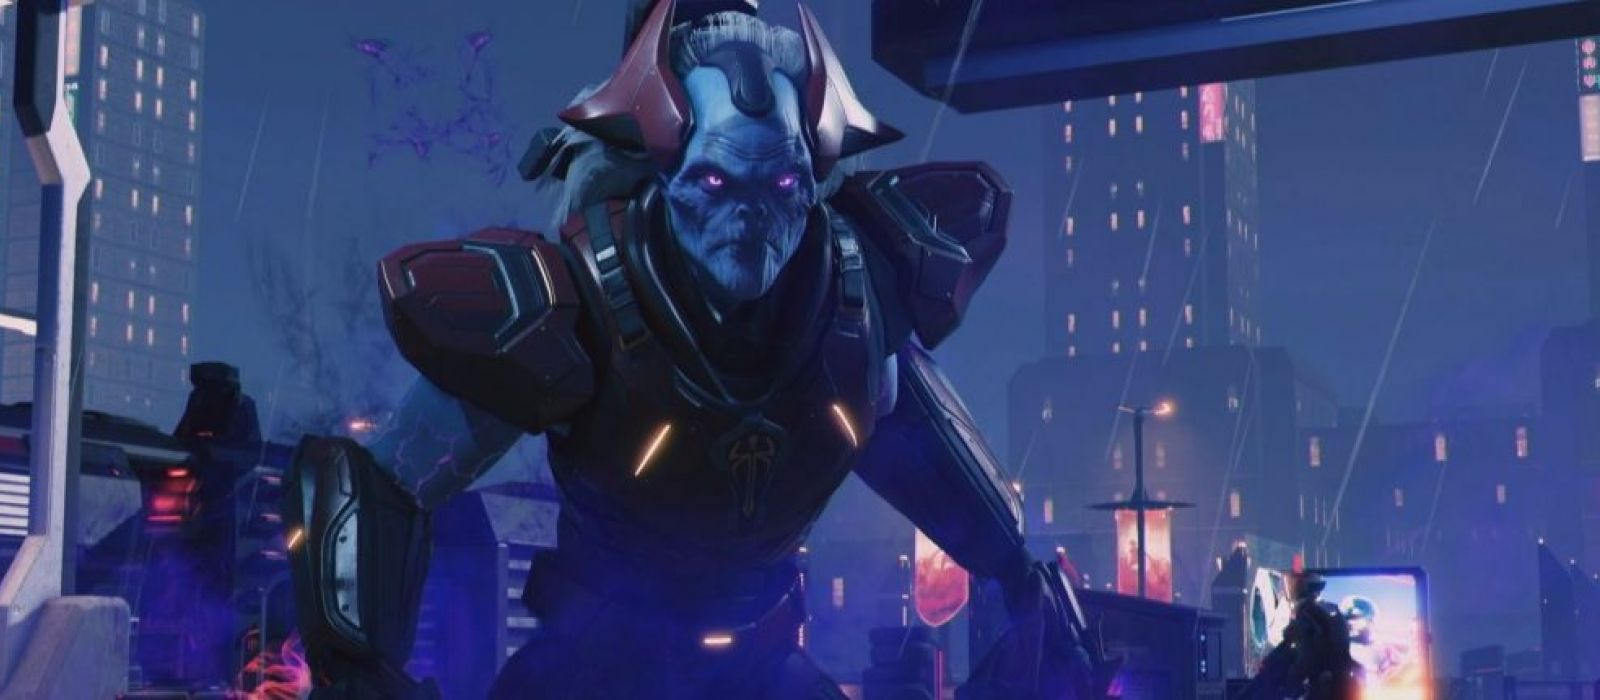 Представлен трейлер Варлока из XCOM 2: War of the Chosen